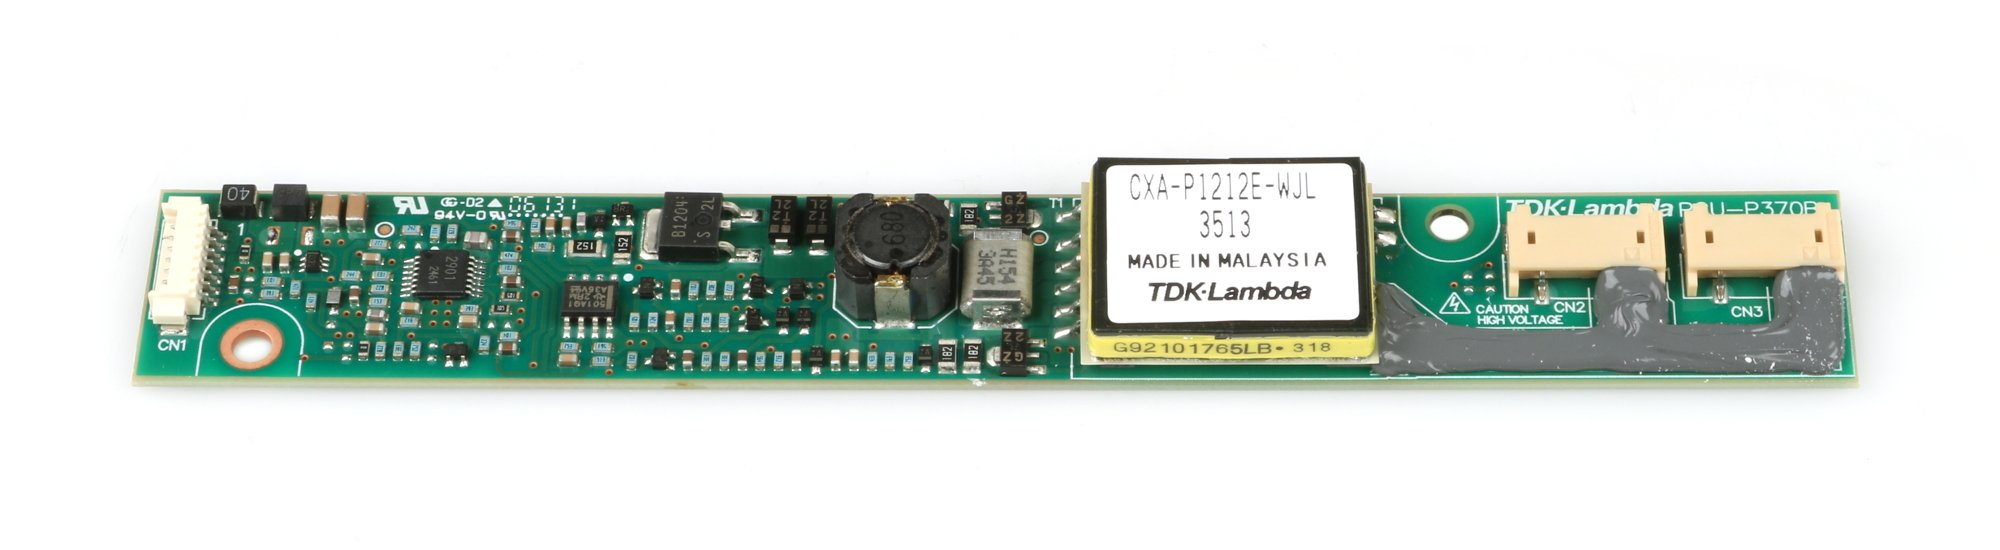 DC AC Inverter PCB for M7CL